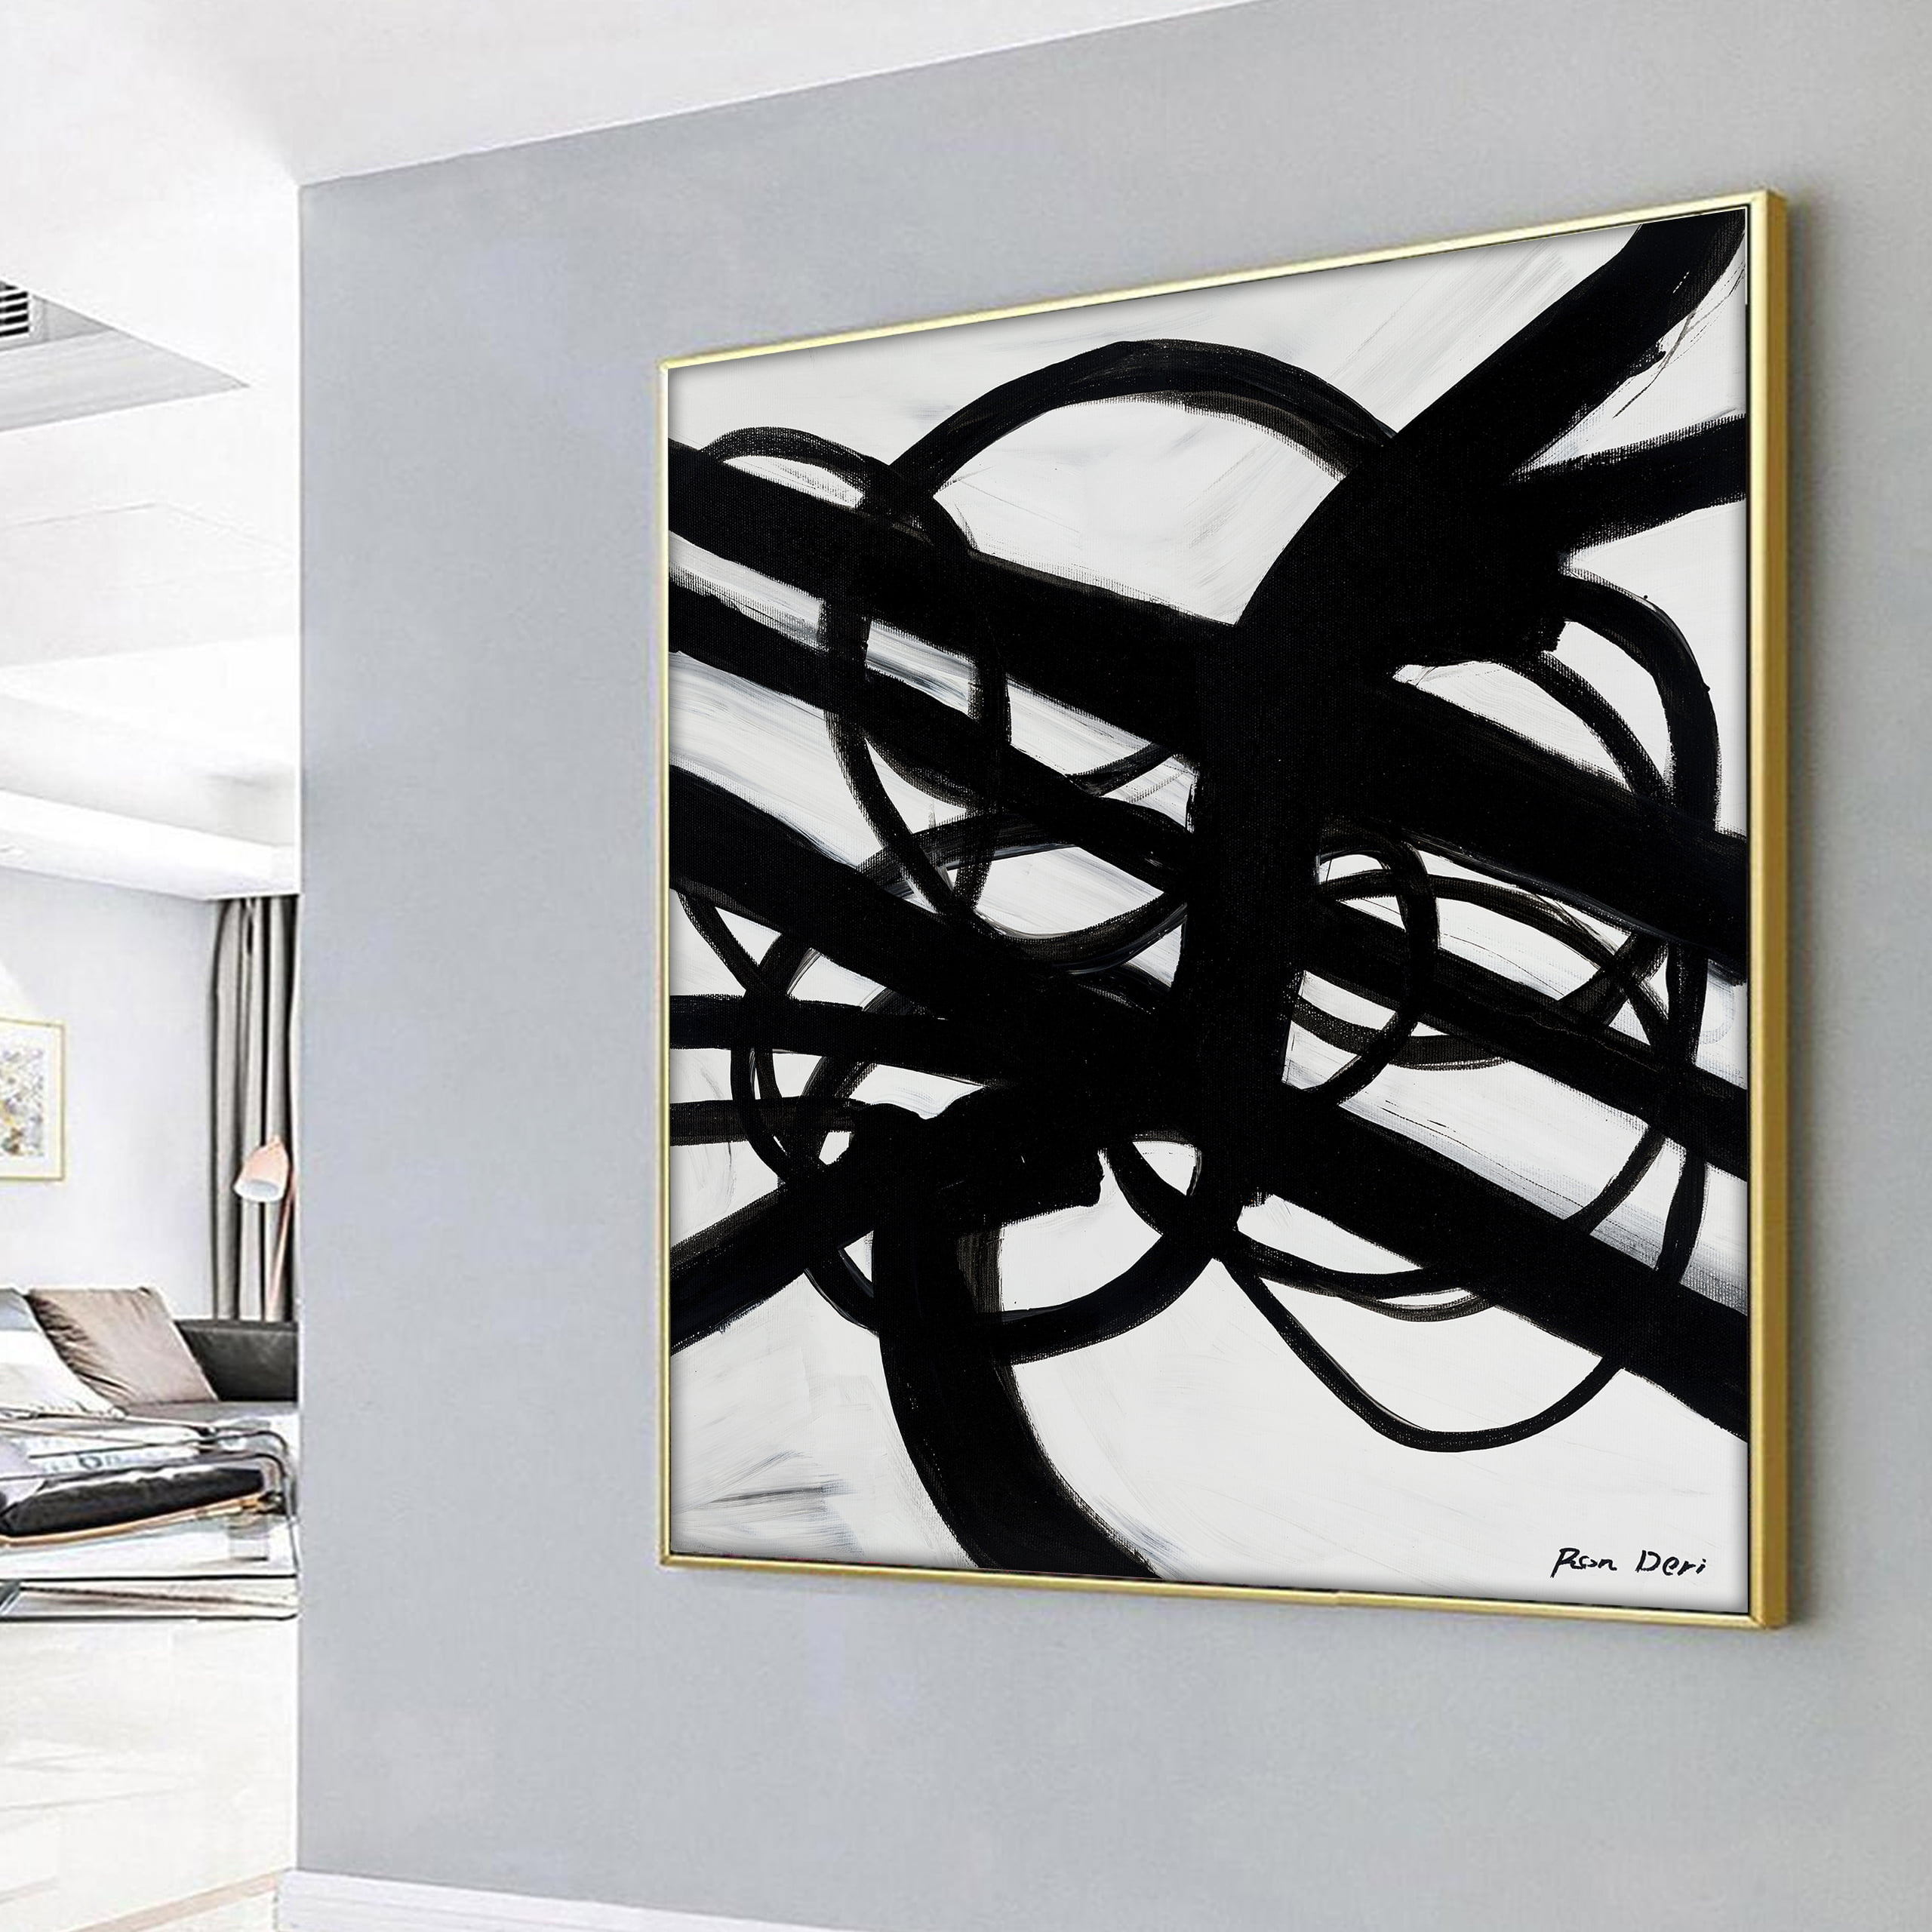 monochrome modern contemporary large canvas wall art by ron deri for home decor